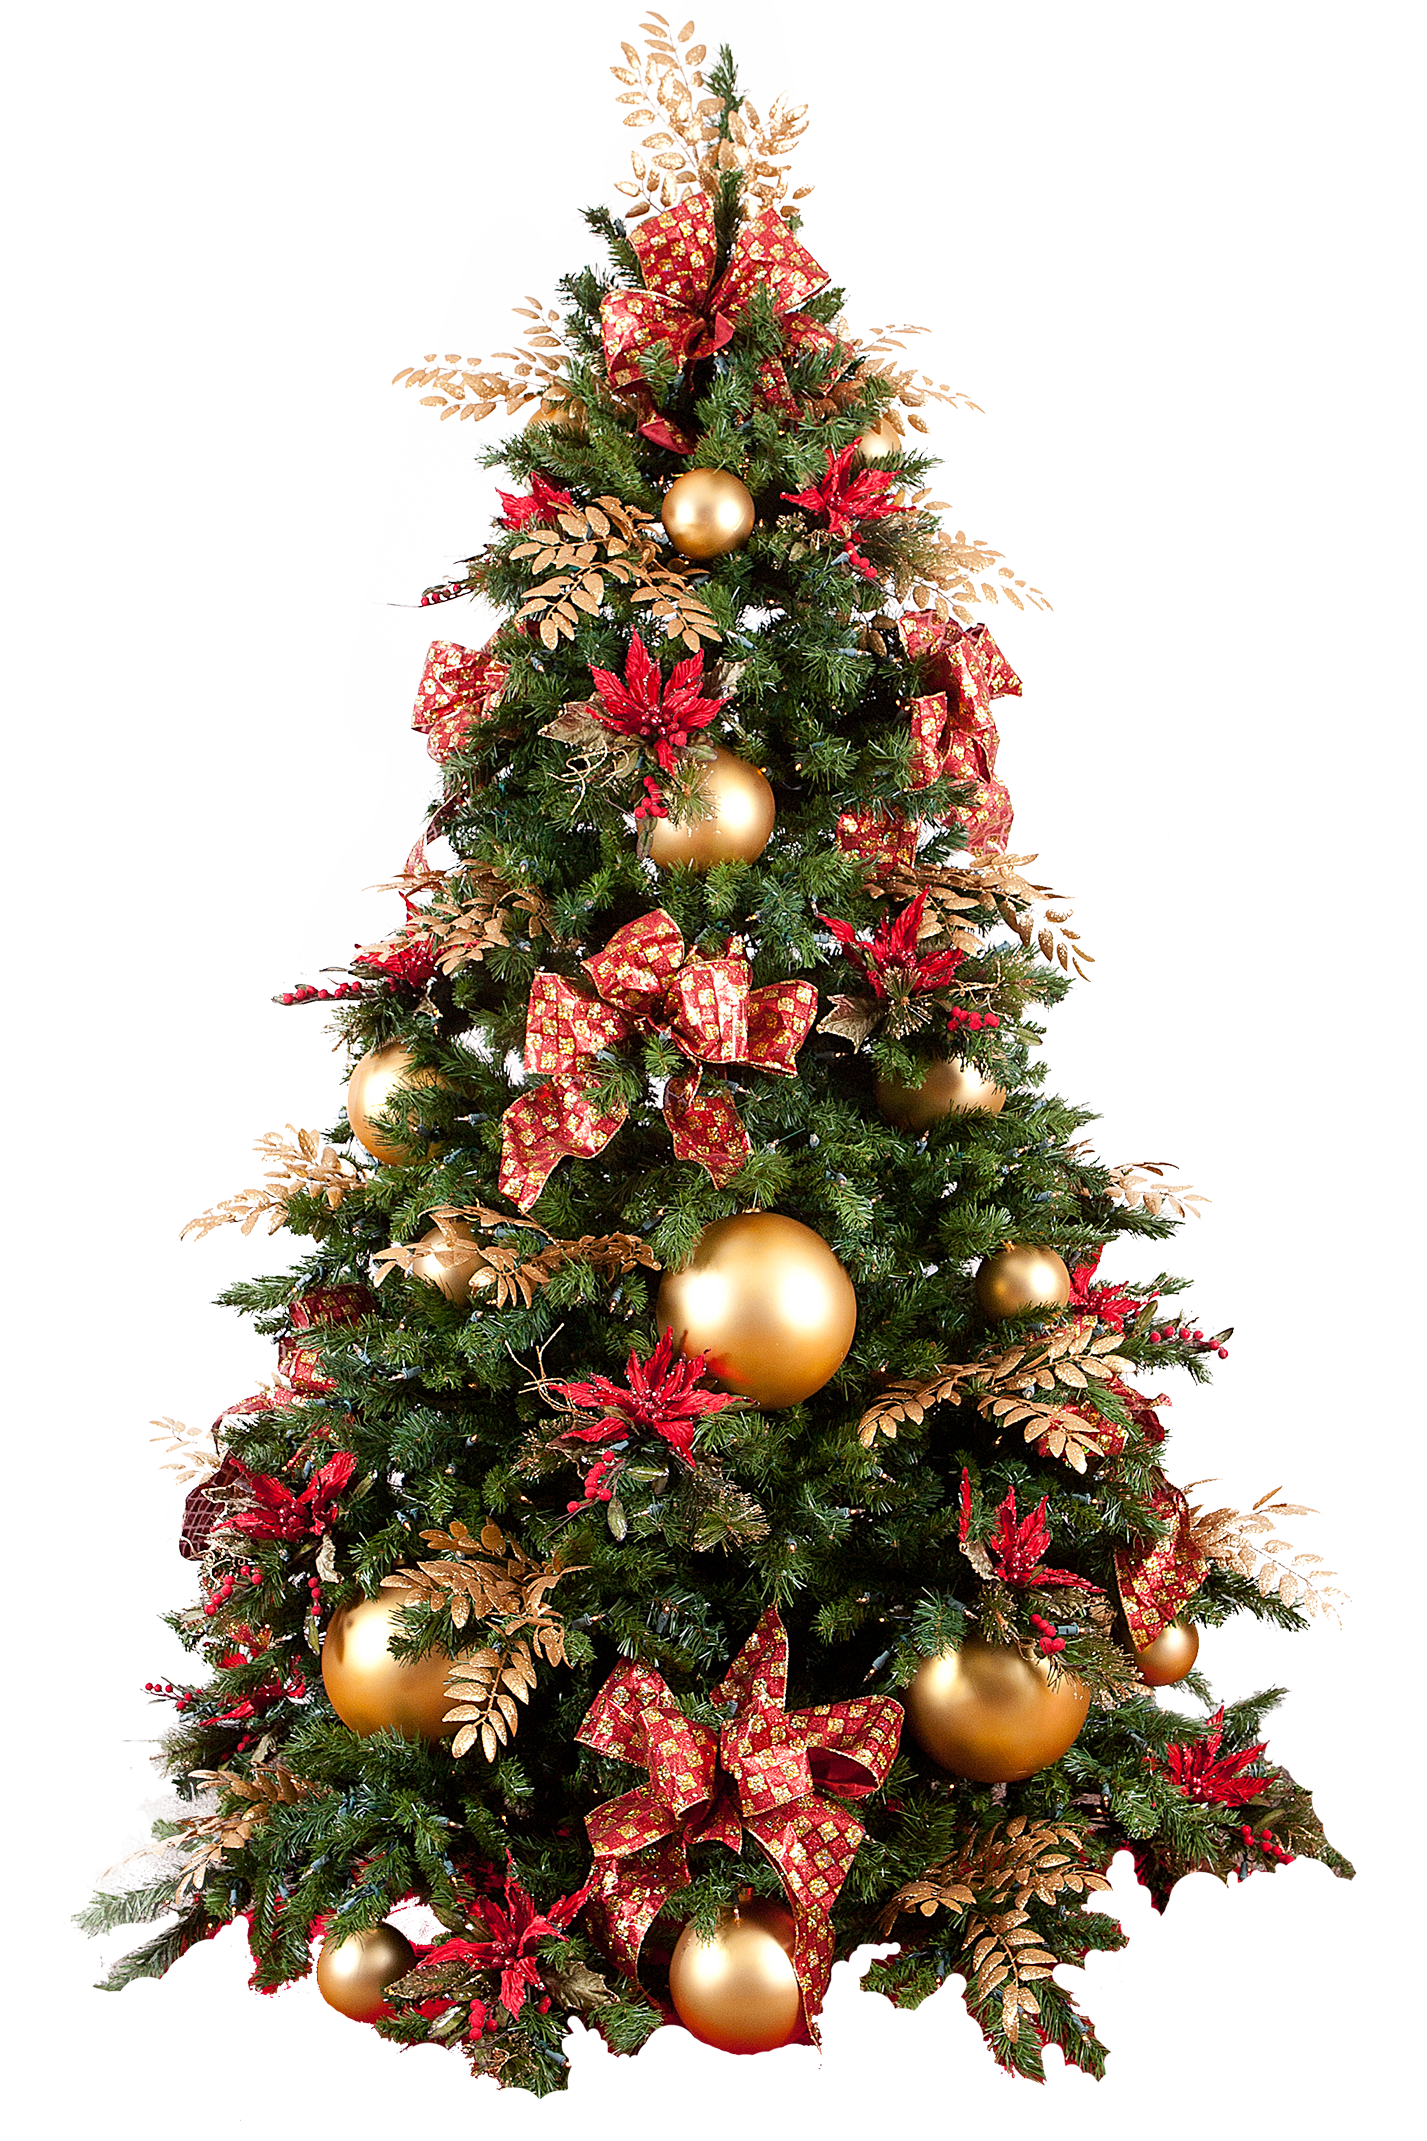 Christmas tree PNG images free download.